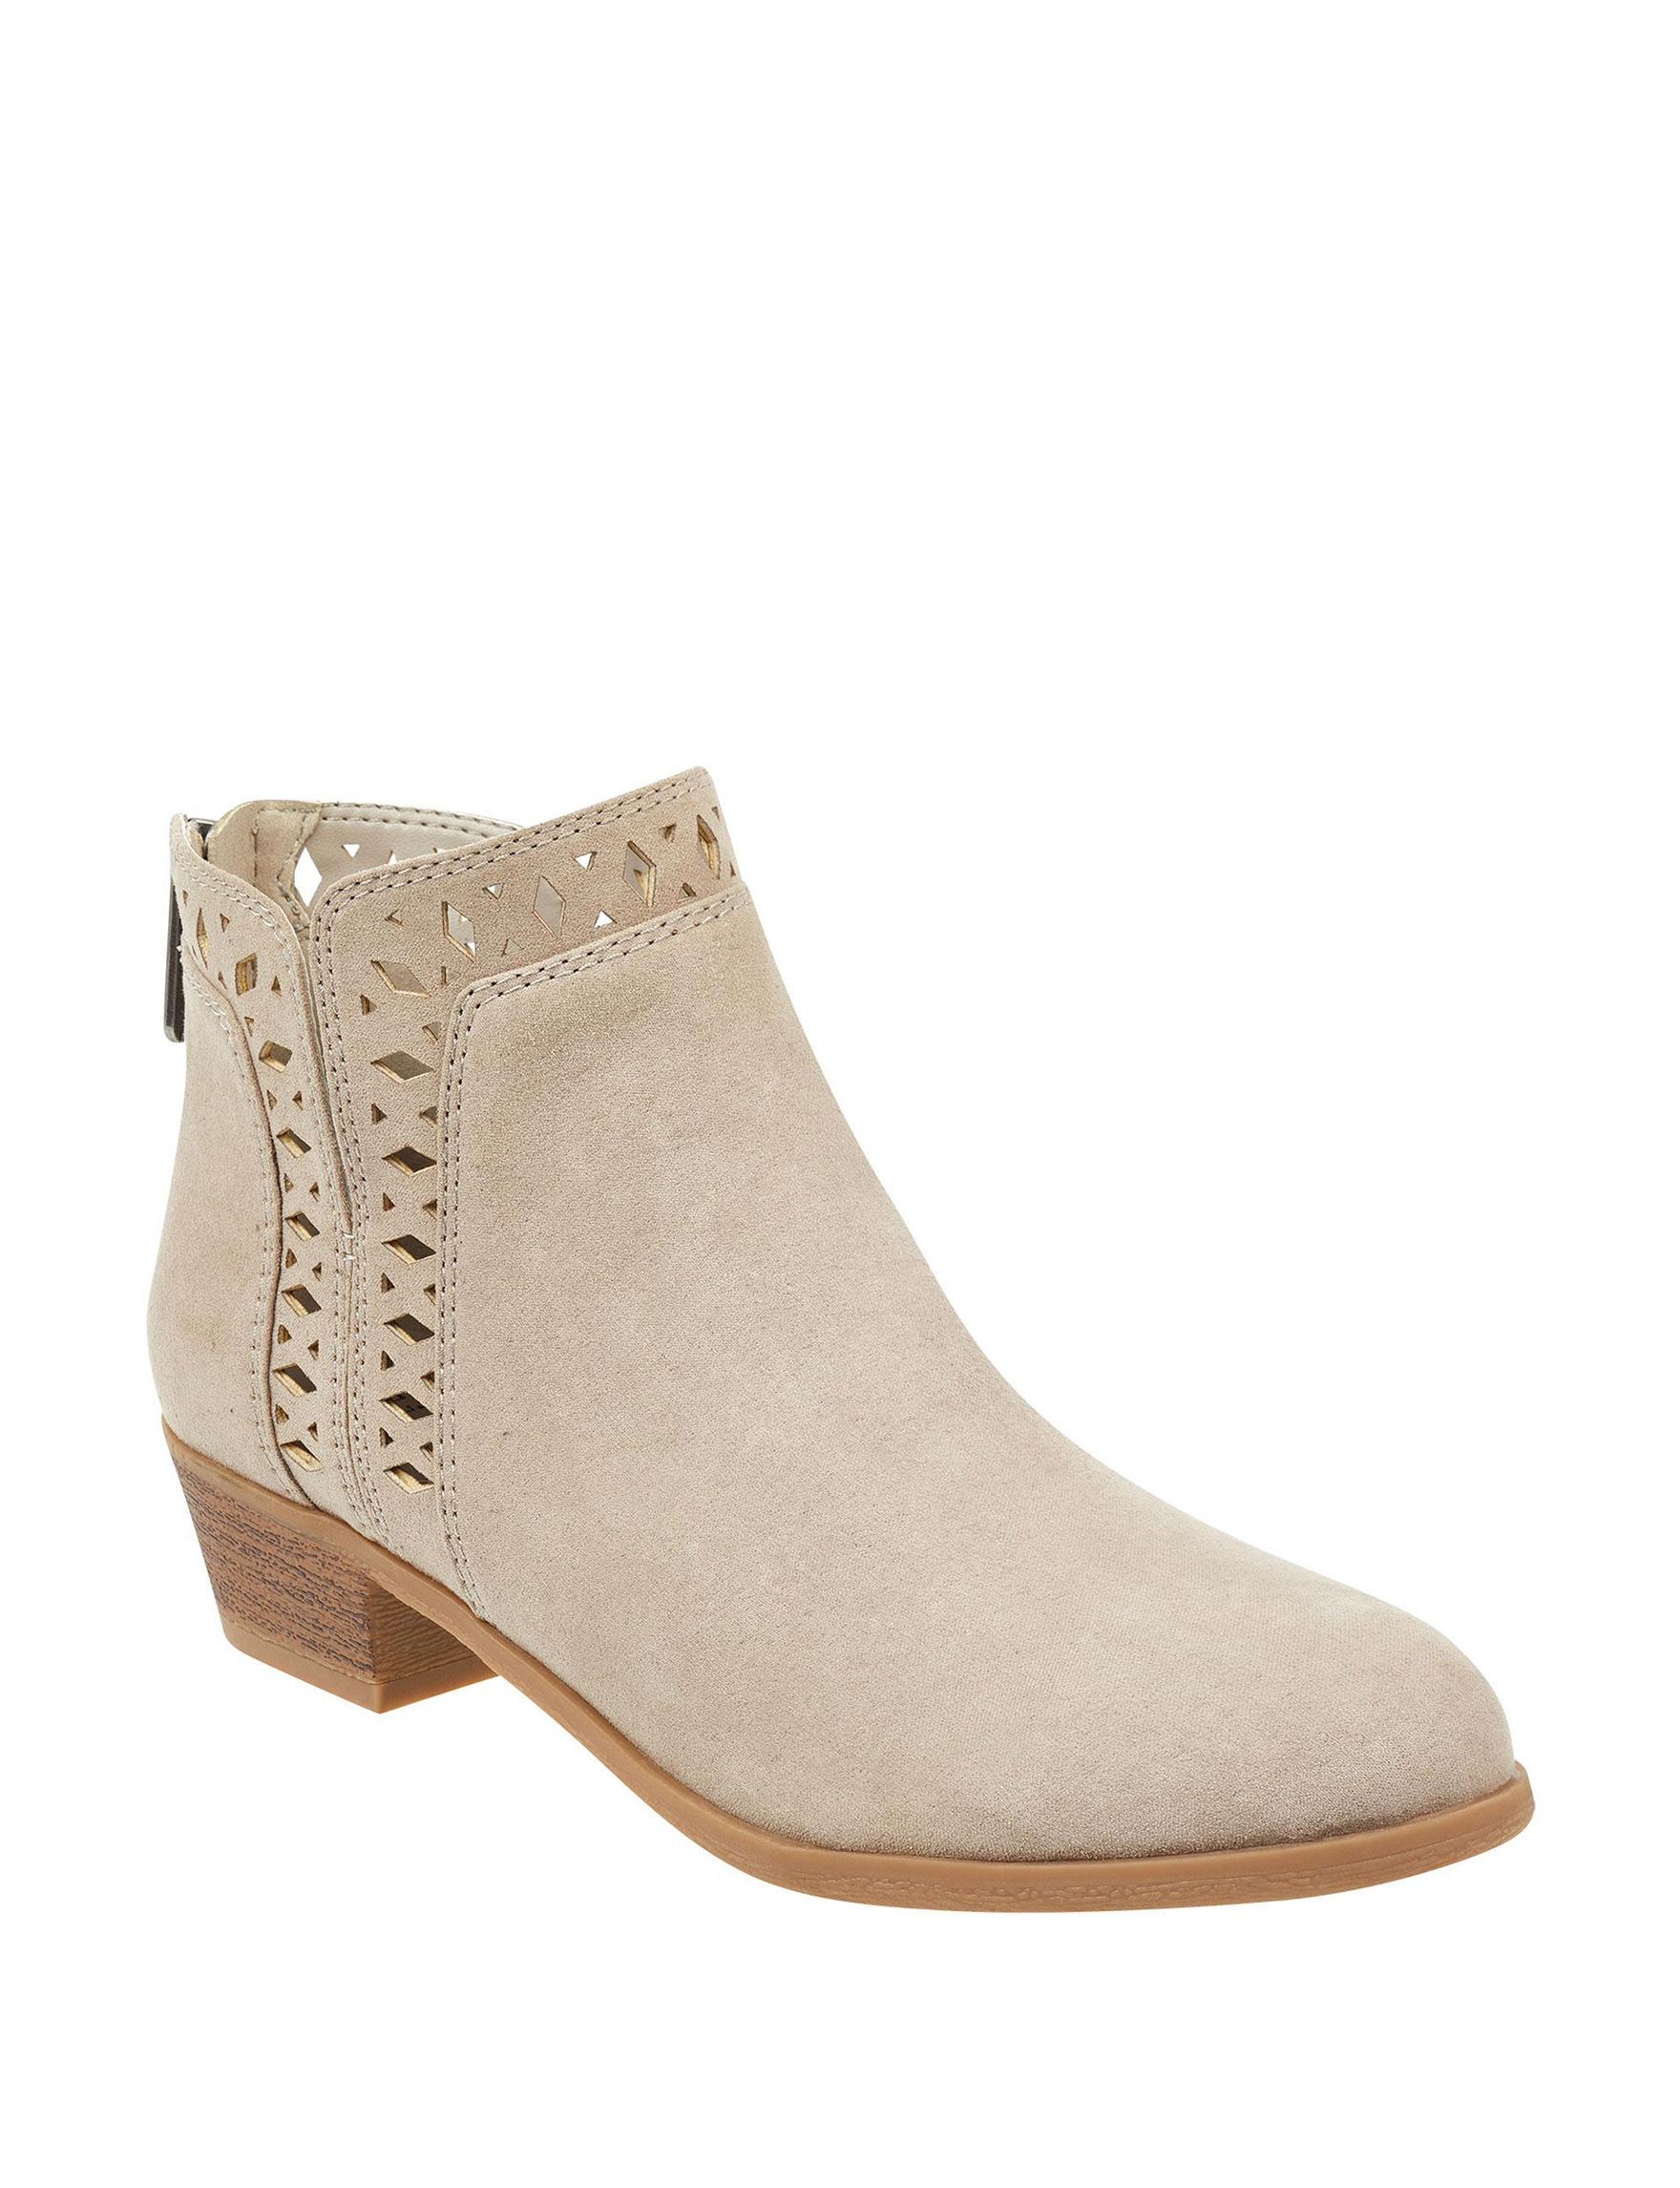 Indigo Rd. Beige Ankle Boots & Booties